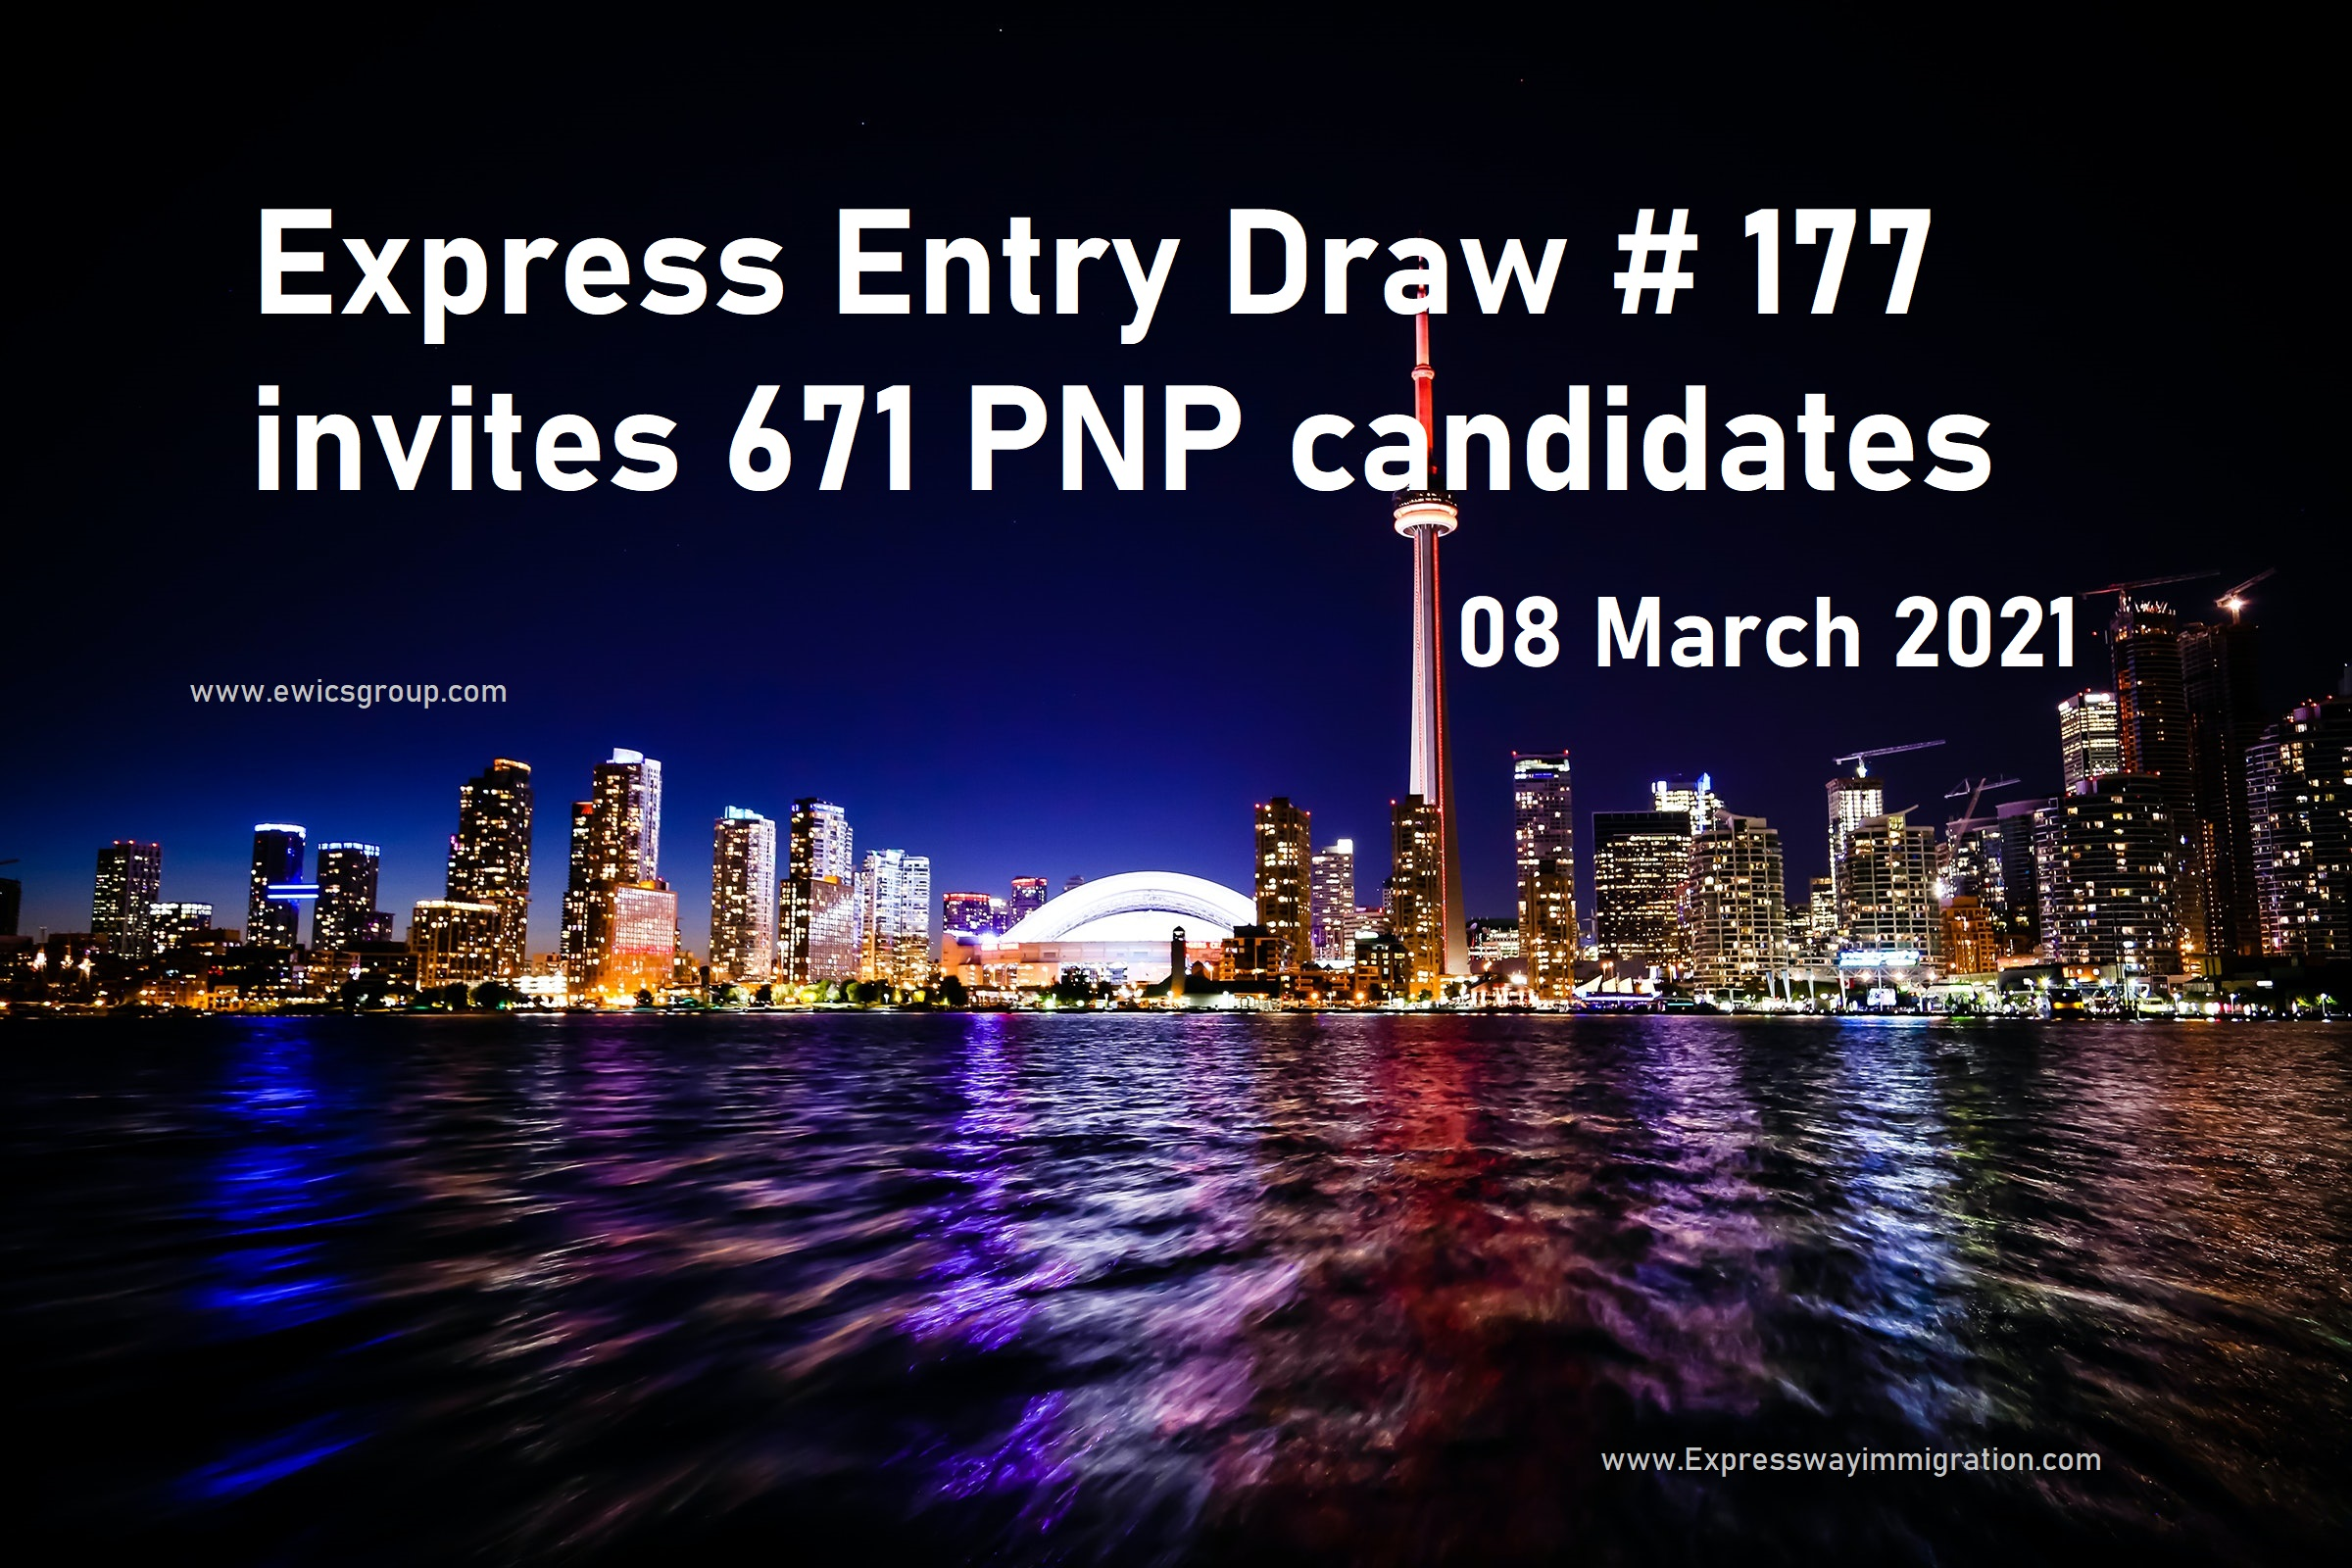 Express Entry Draw #177, Express Entry Draw March 2021, Latest Canada Immigration Draw